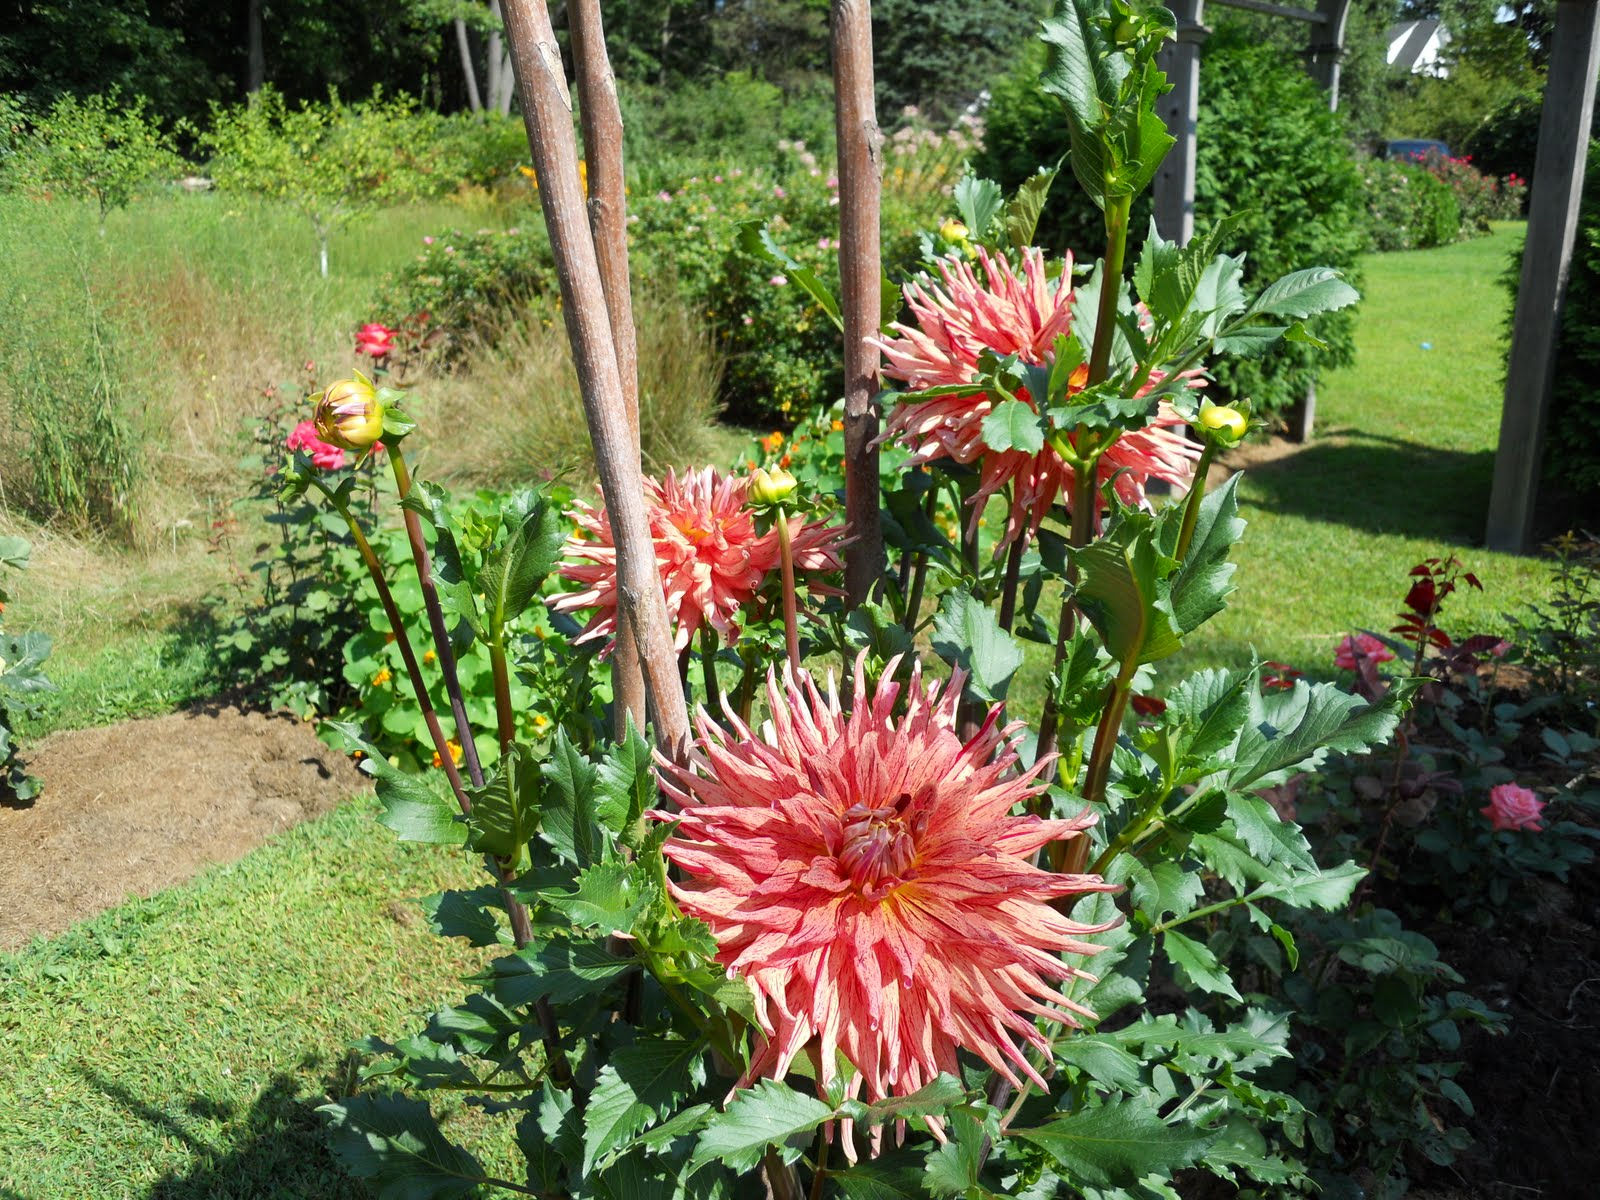 In early May I arranged three Sumac stakes in a tight triangle and planted a single dahlia tuber in its center. Over the course of the summer I\u0027ve looped ... & A Year In The Garden: 2010-08-22